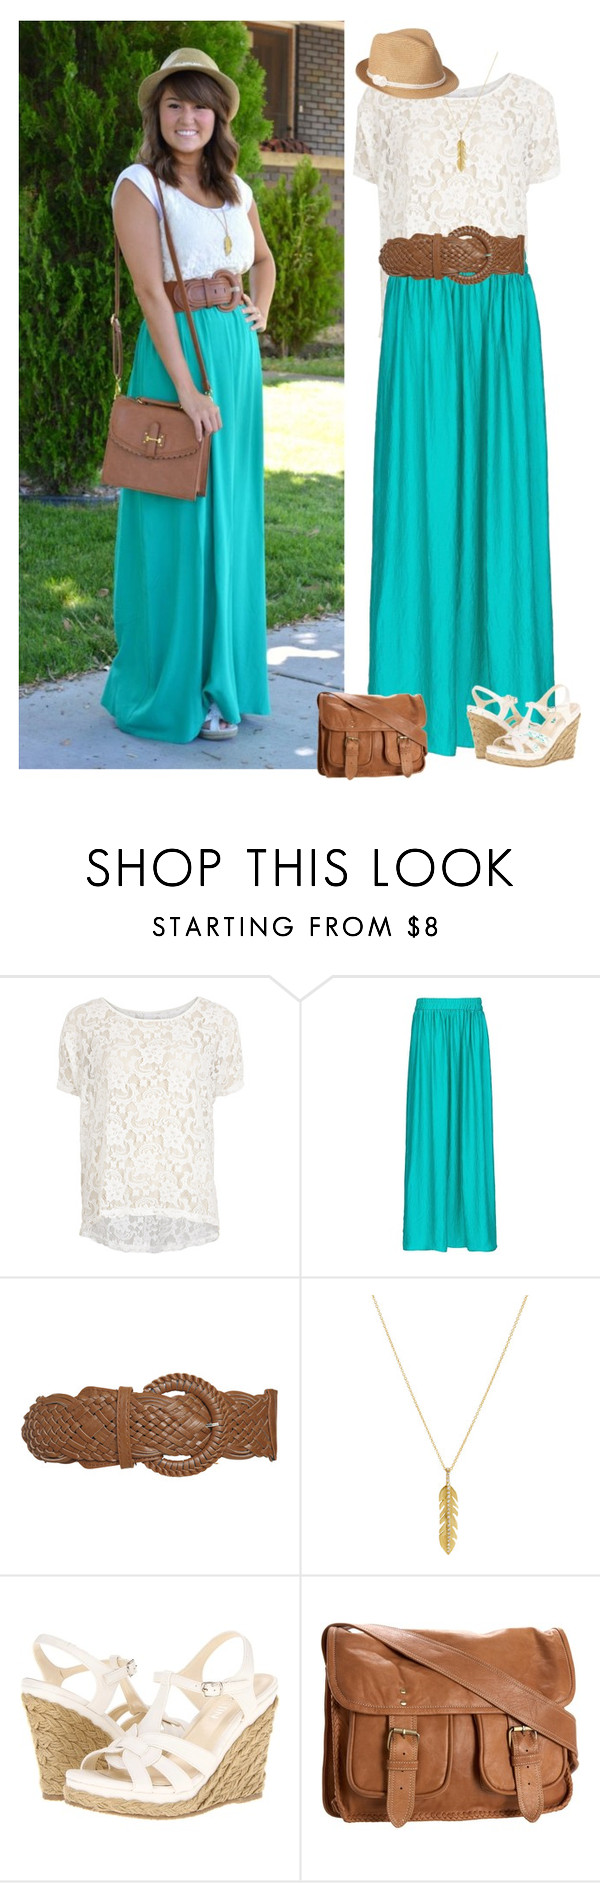 """Modest Style Steal"" by samanthahac ❤ liked on Polyvore featuring VILA, MANGO, Wet Seal, Ileana Makri, Christin Michaels, Cleobella and Old Navy"